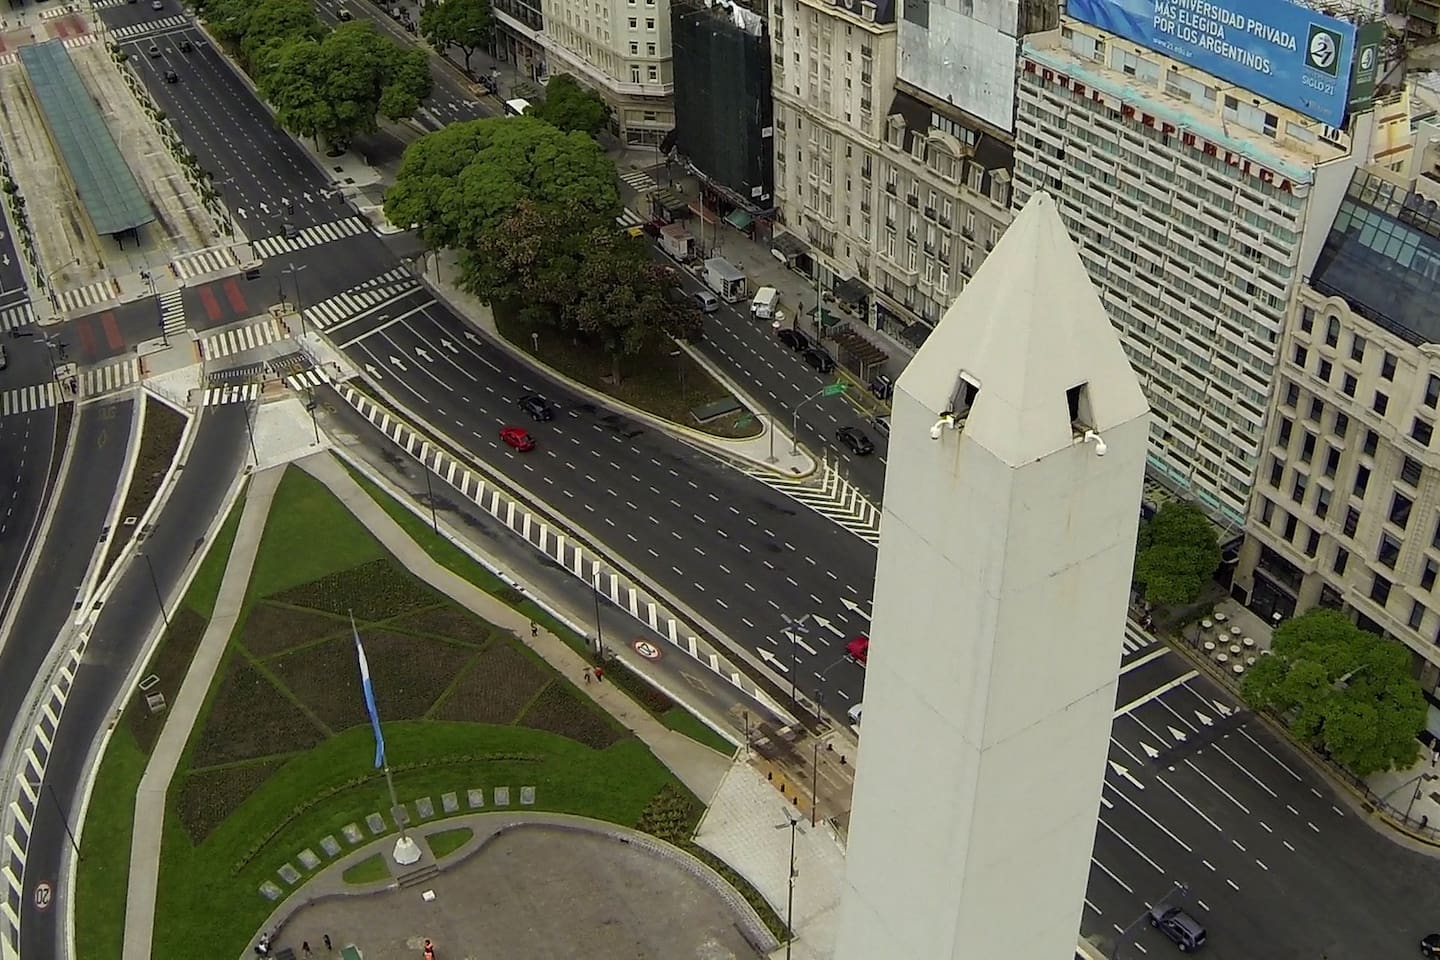 """An unique shot from the """"Obelisco"""" and city centre. Picture taken by a drone!"""